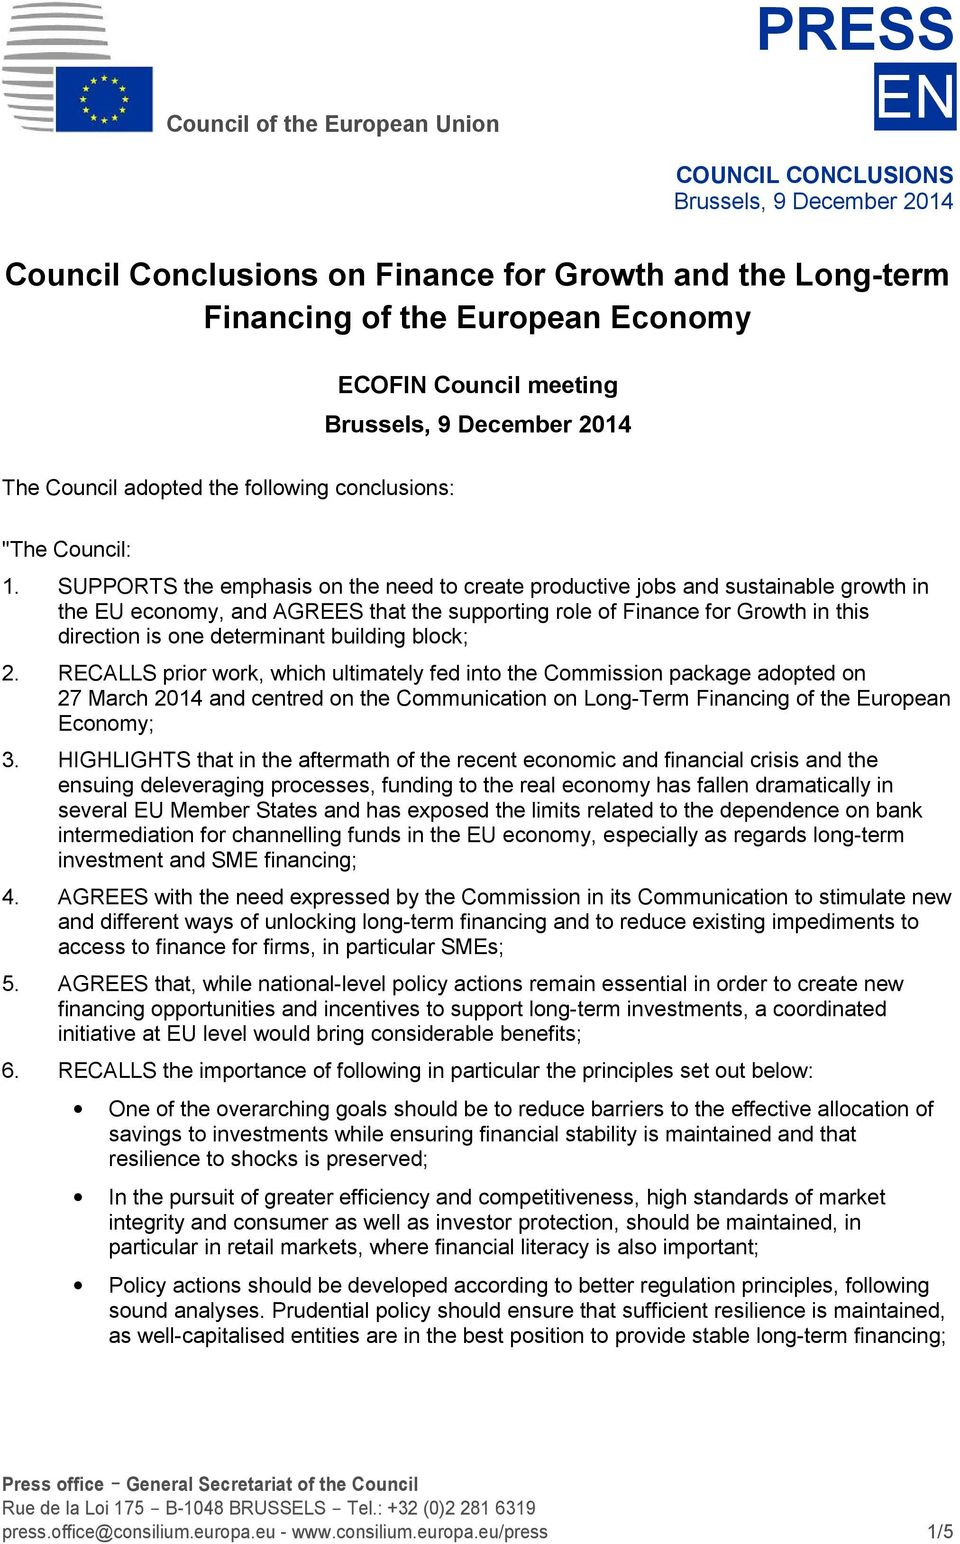 SUPPORTS the emphasis on the need to create productive jobs and sustainable growth in the EU economy, and AGREES that the supporting role of Finance for Growth in this direction is one determinant